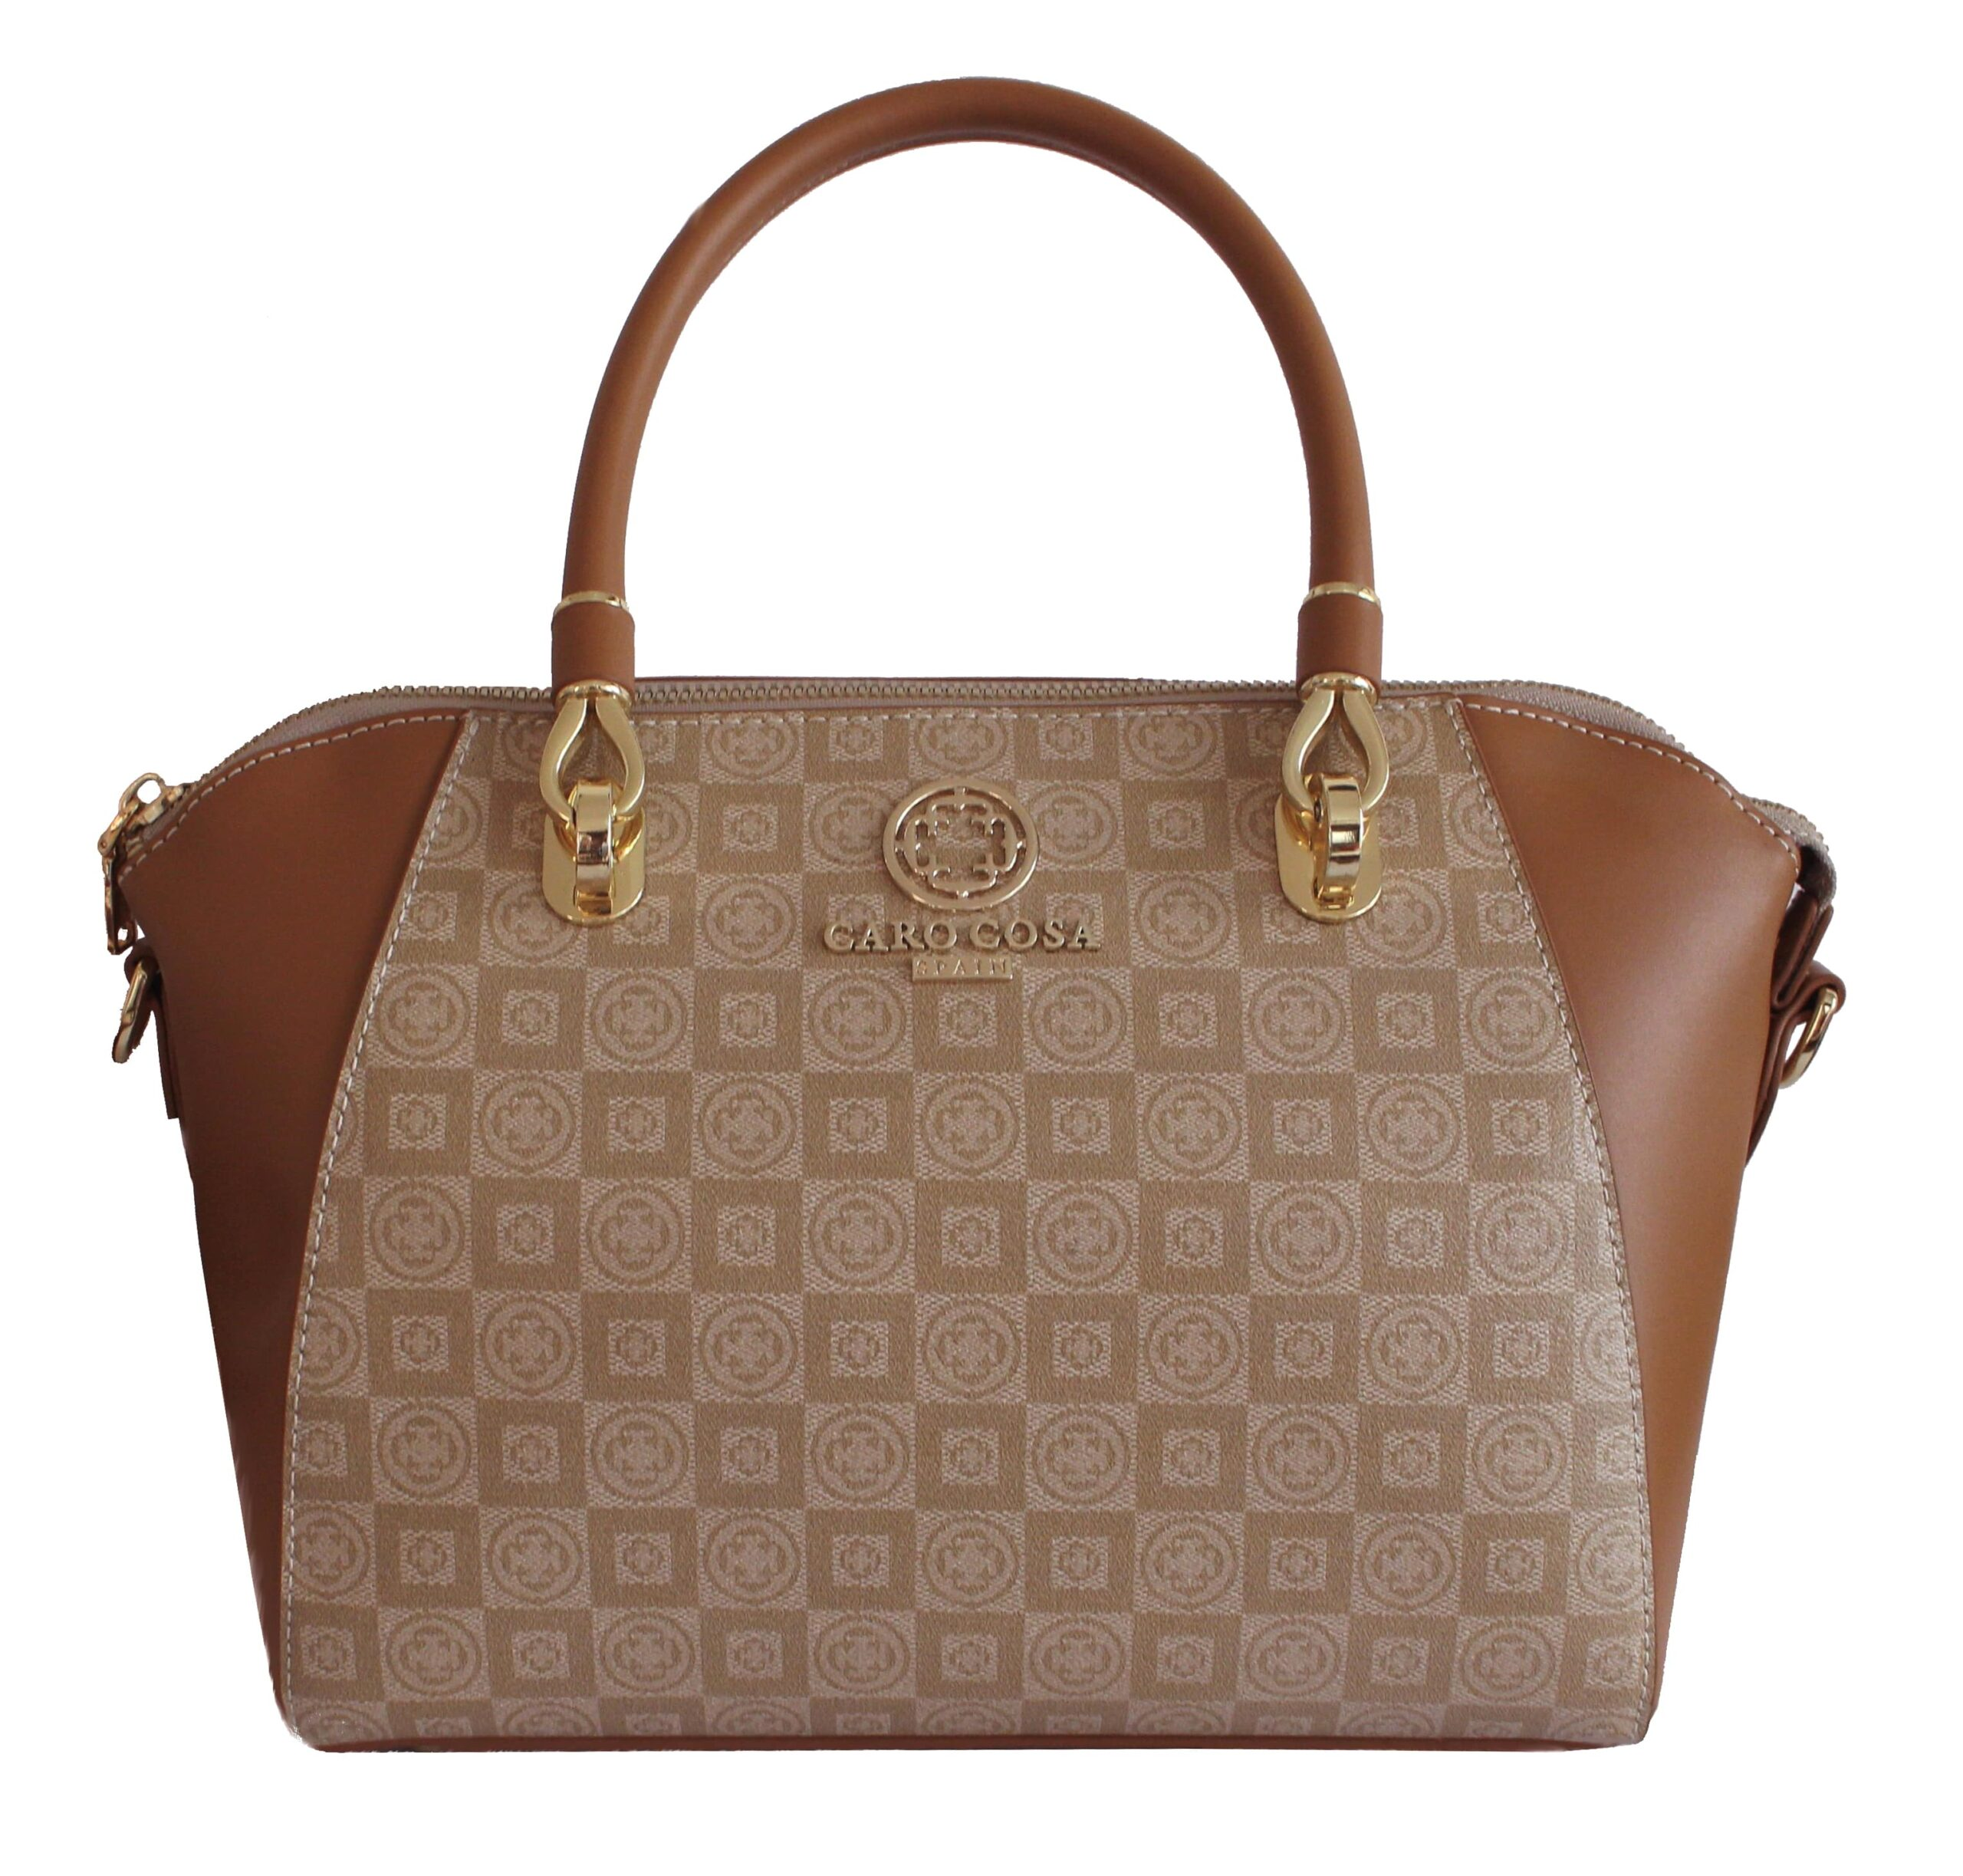 How to Choose Top Handle Bags For Women